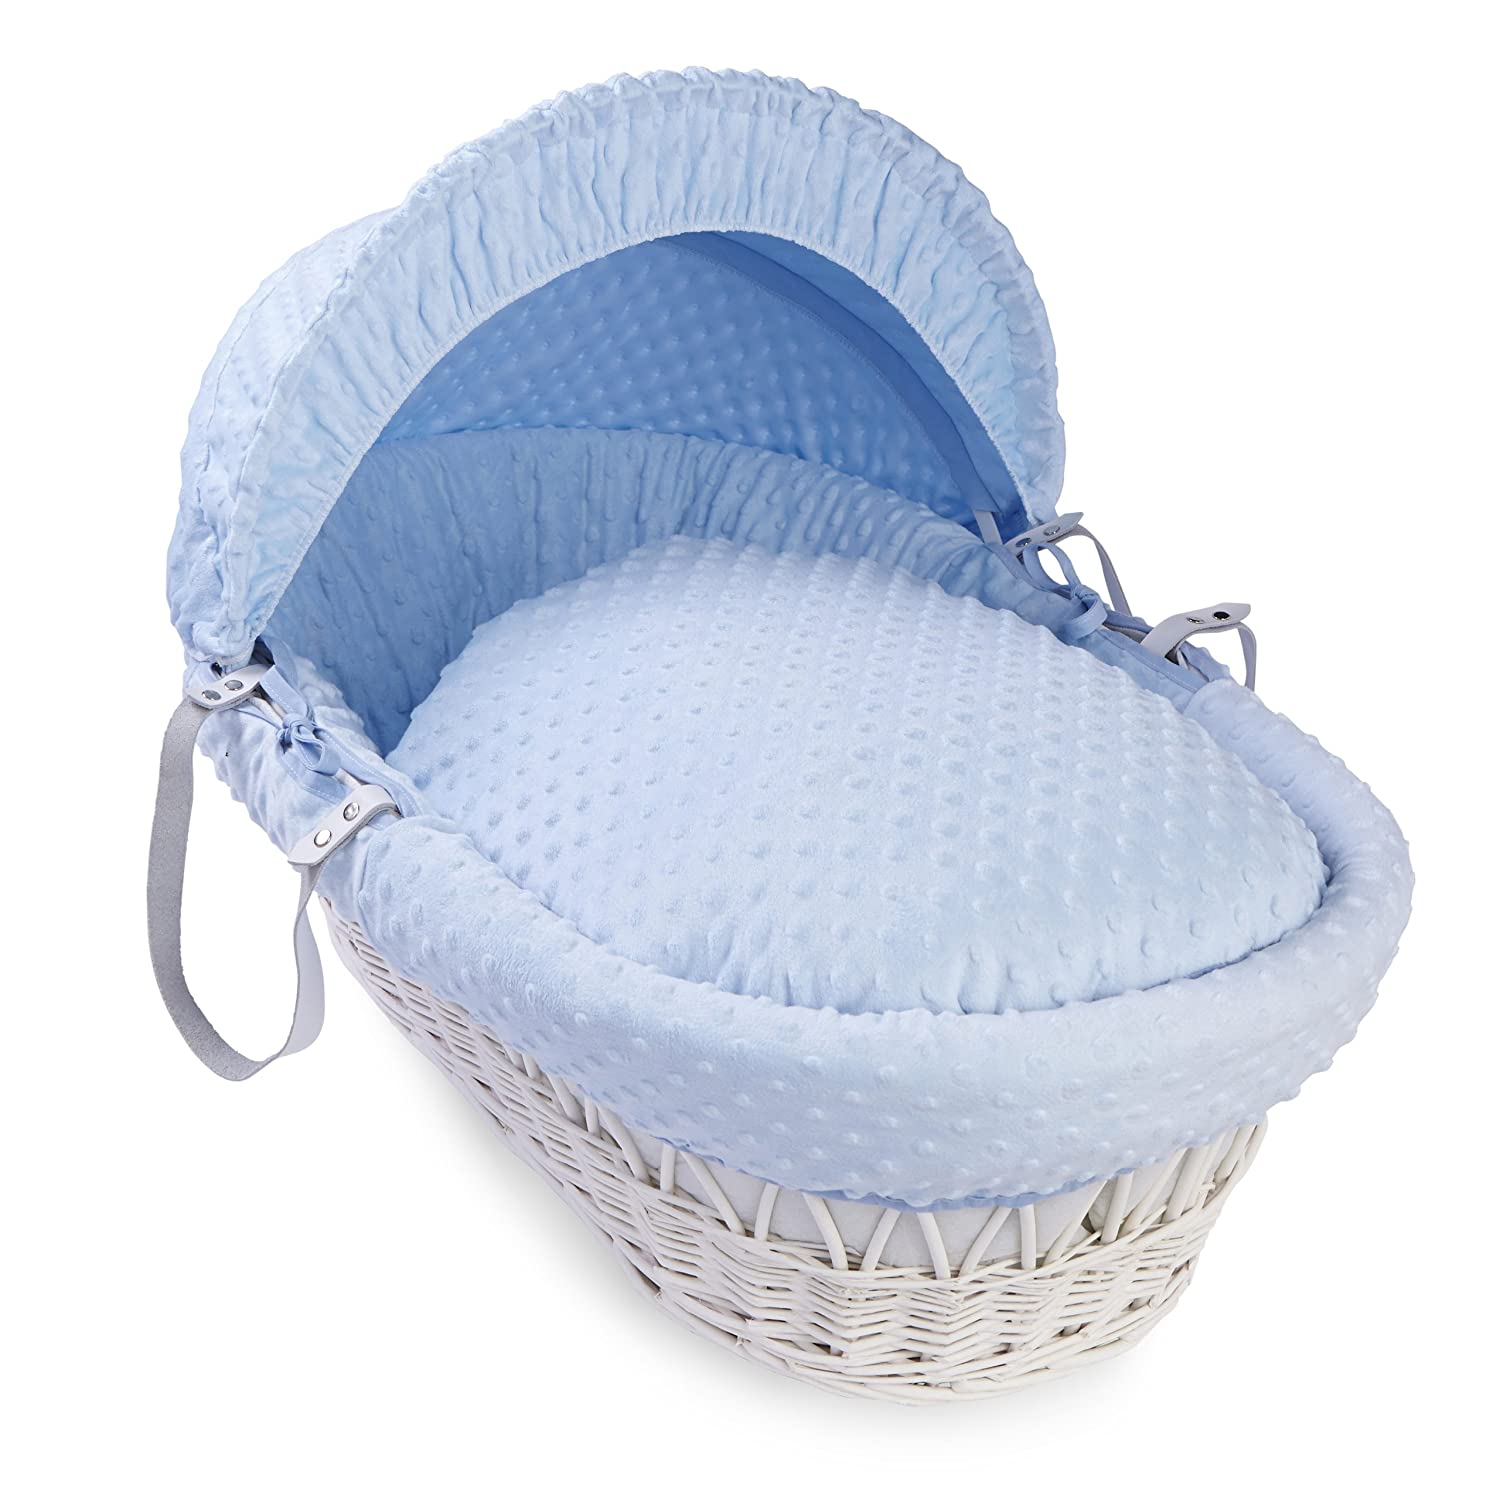 Dimple White Wicker Moses Basket - Blue